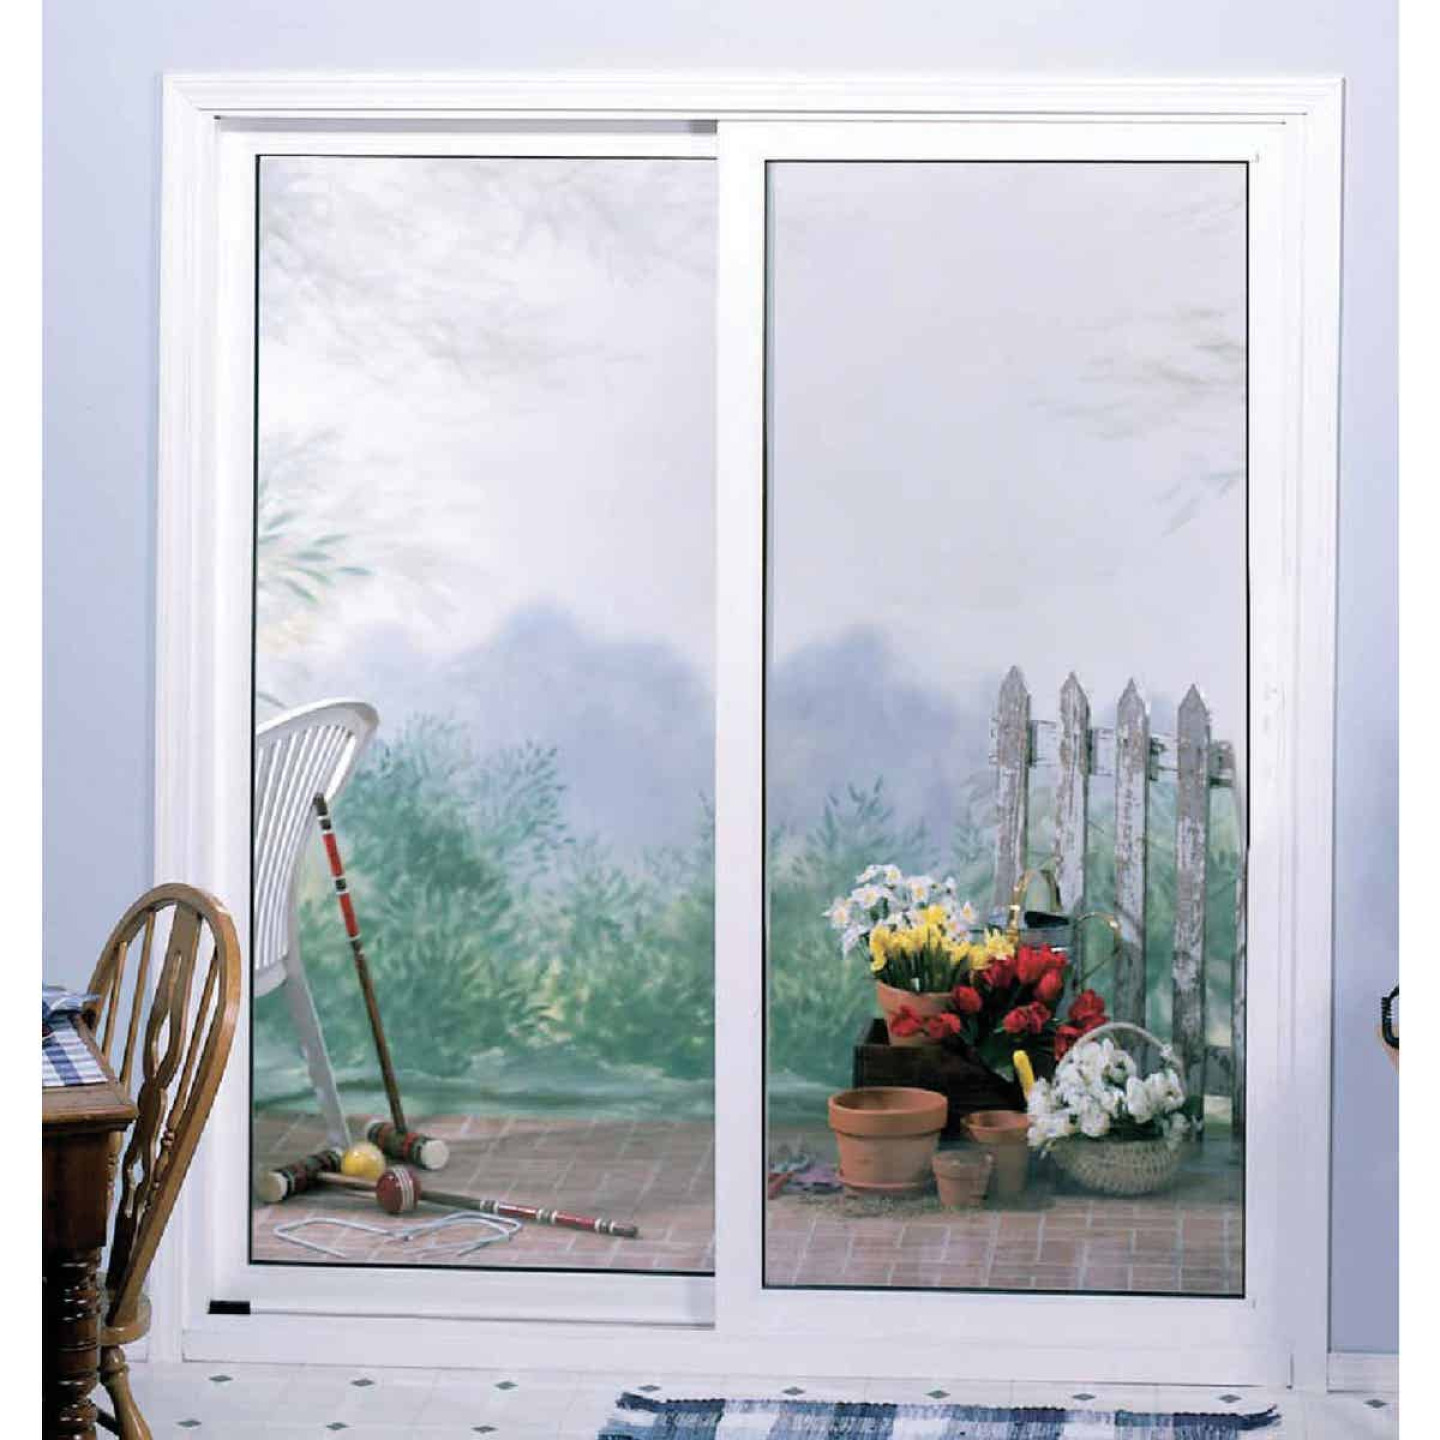 Interstate Model 4202 6/0-6/8 Reversible White Sliding Patio Door with South Glass Pack Image 2